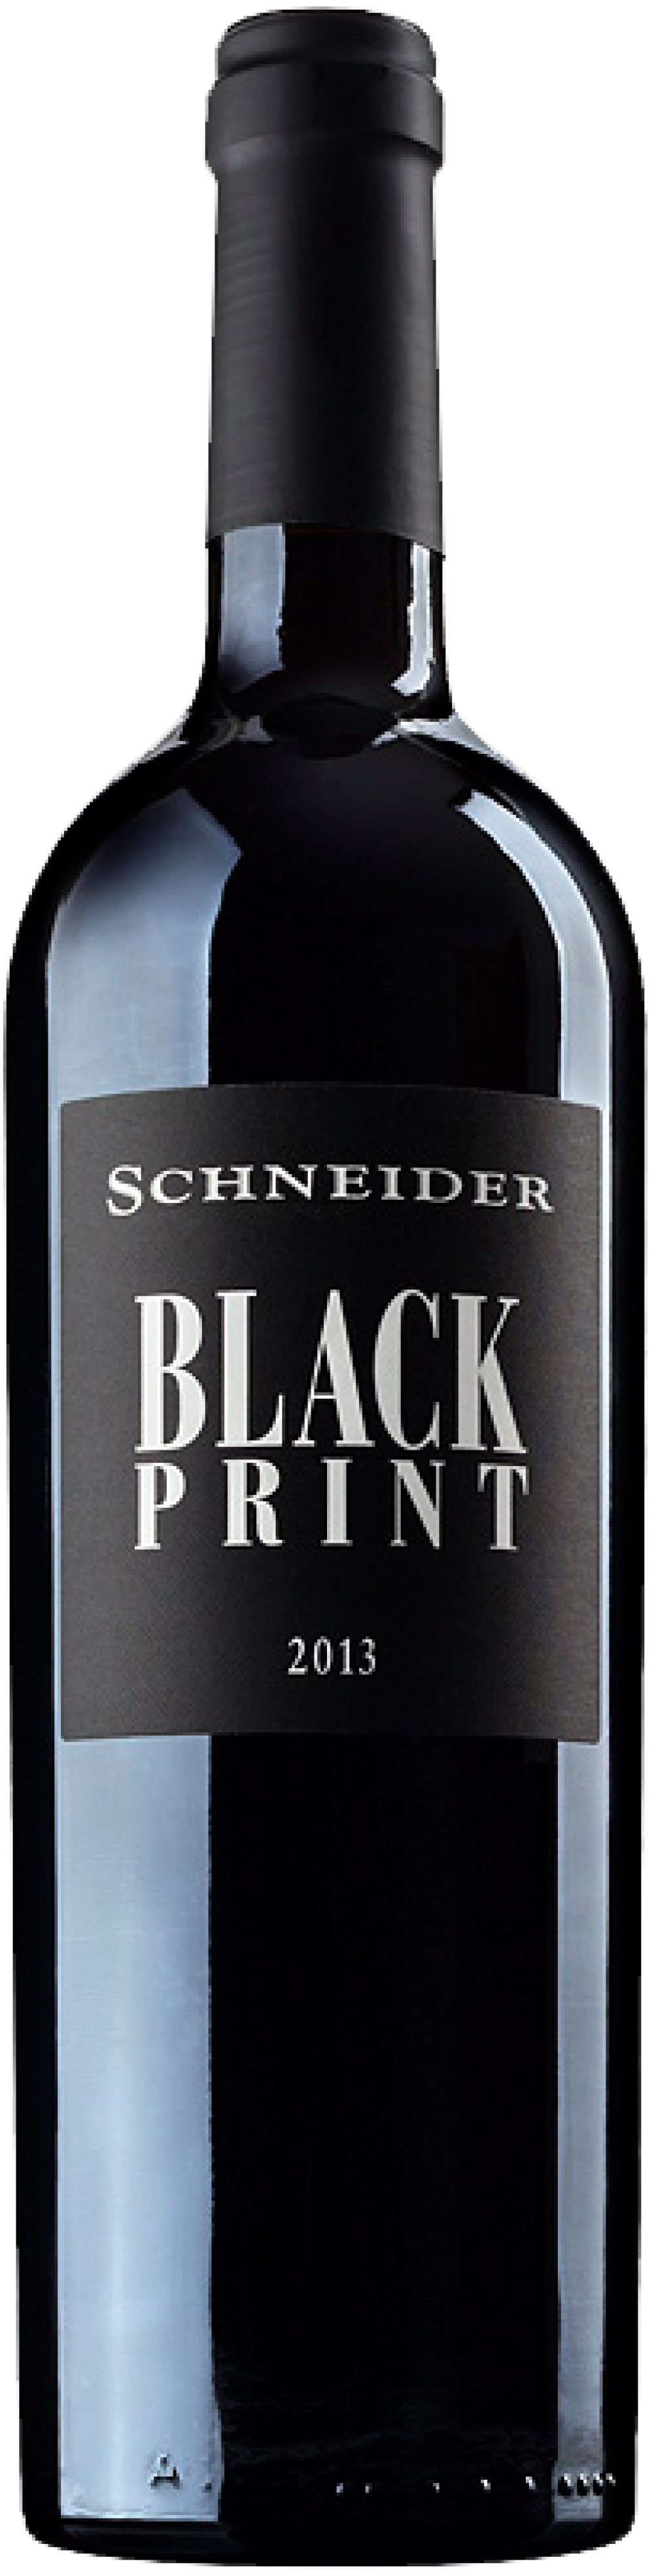 files/images/wines/Germany/markus-schneider-pfalz/black print 2013_png.png